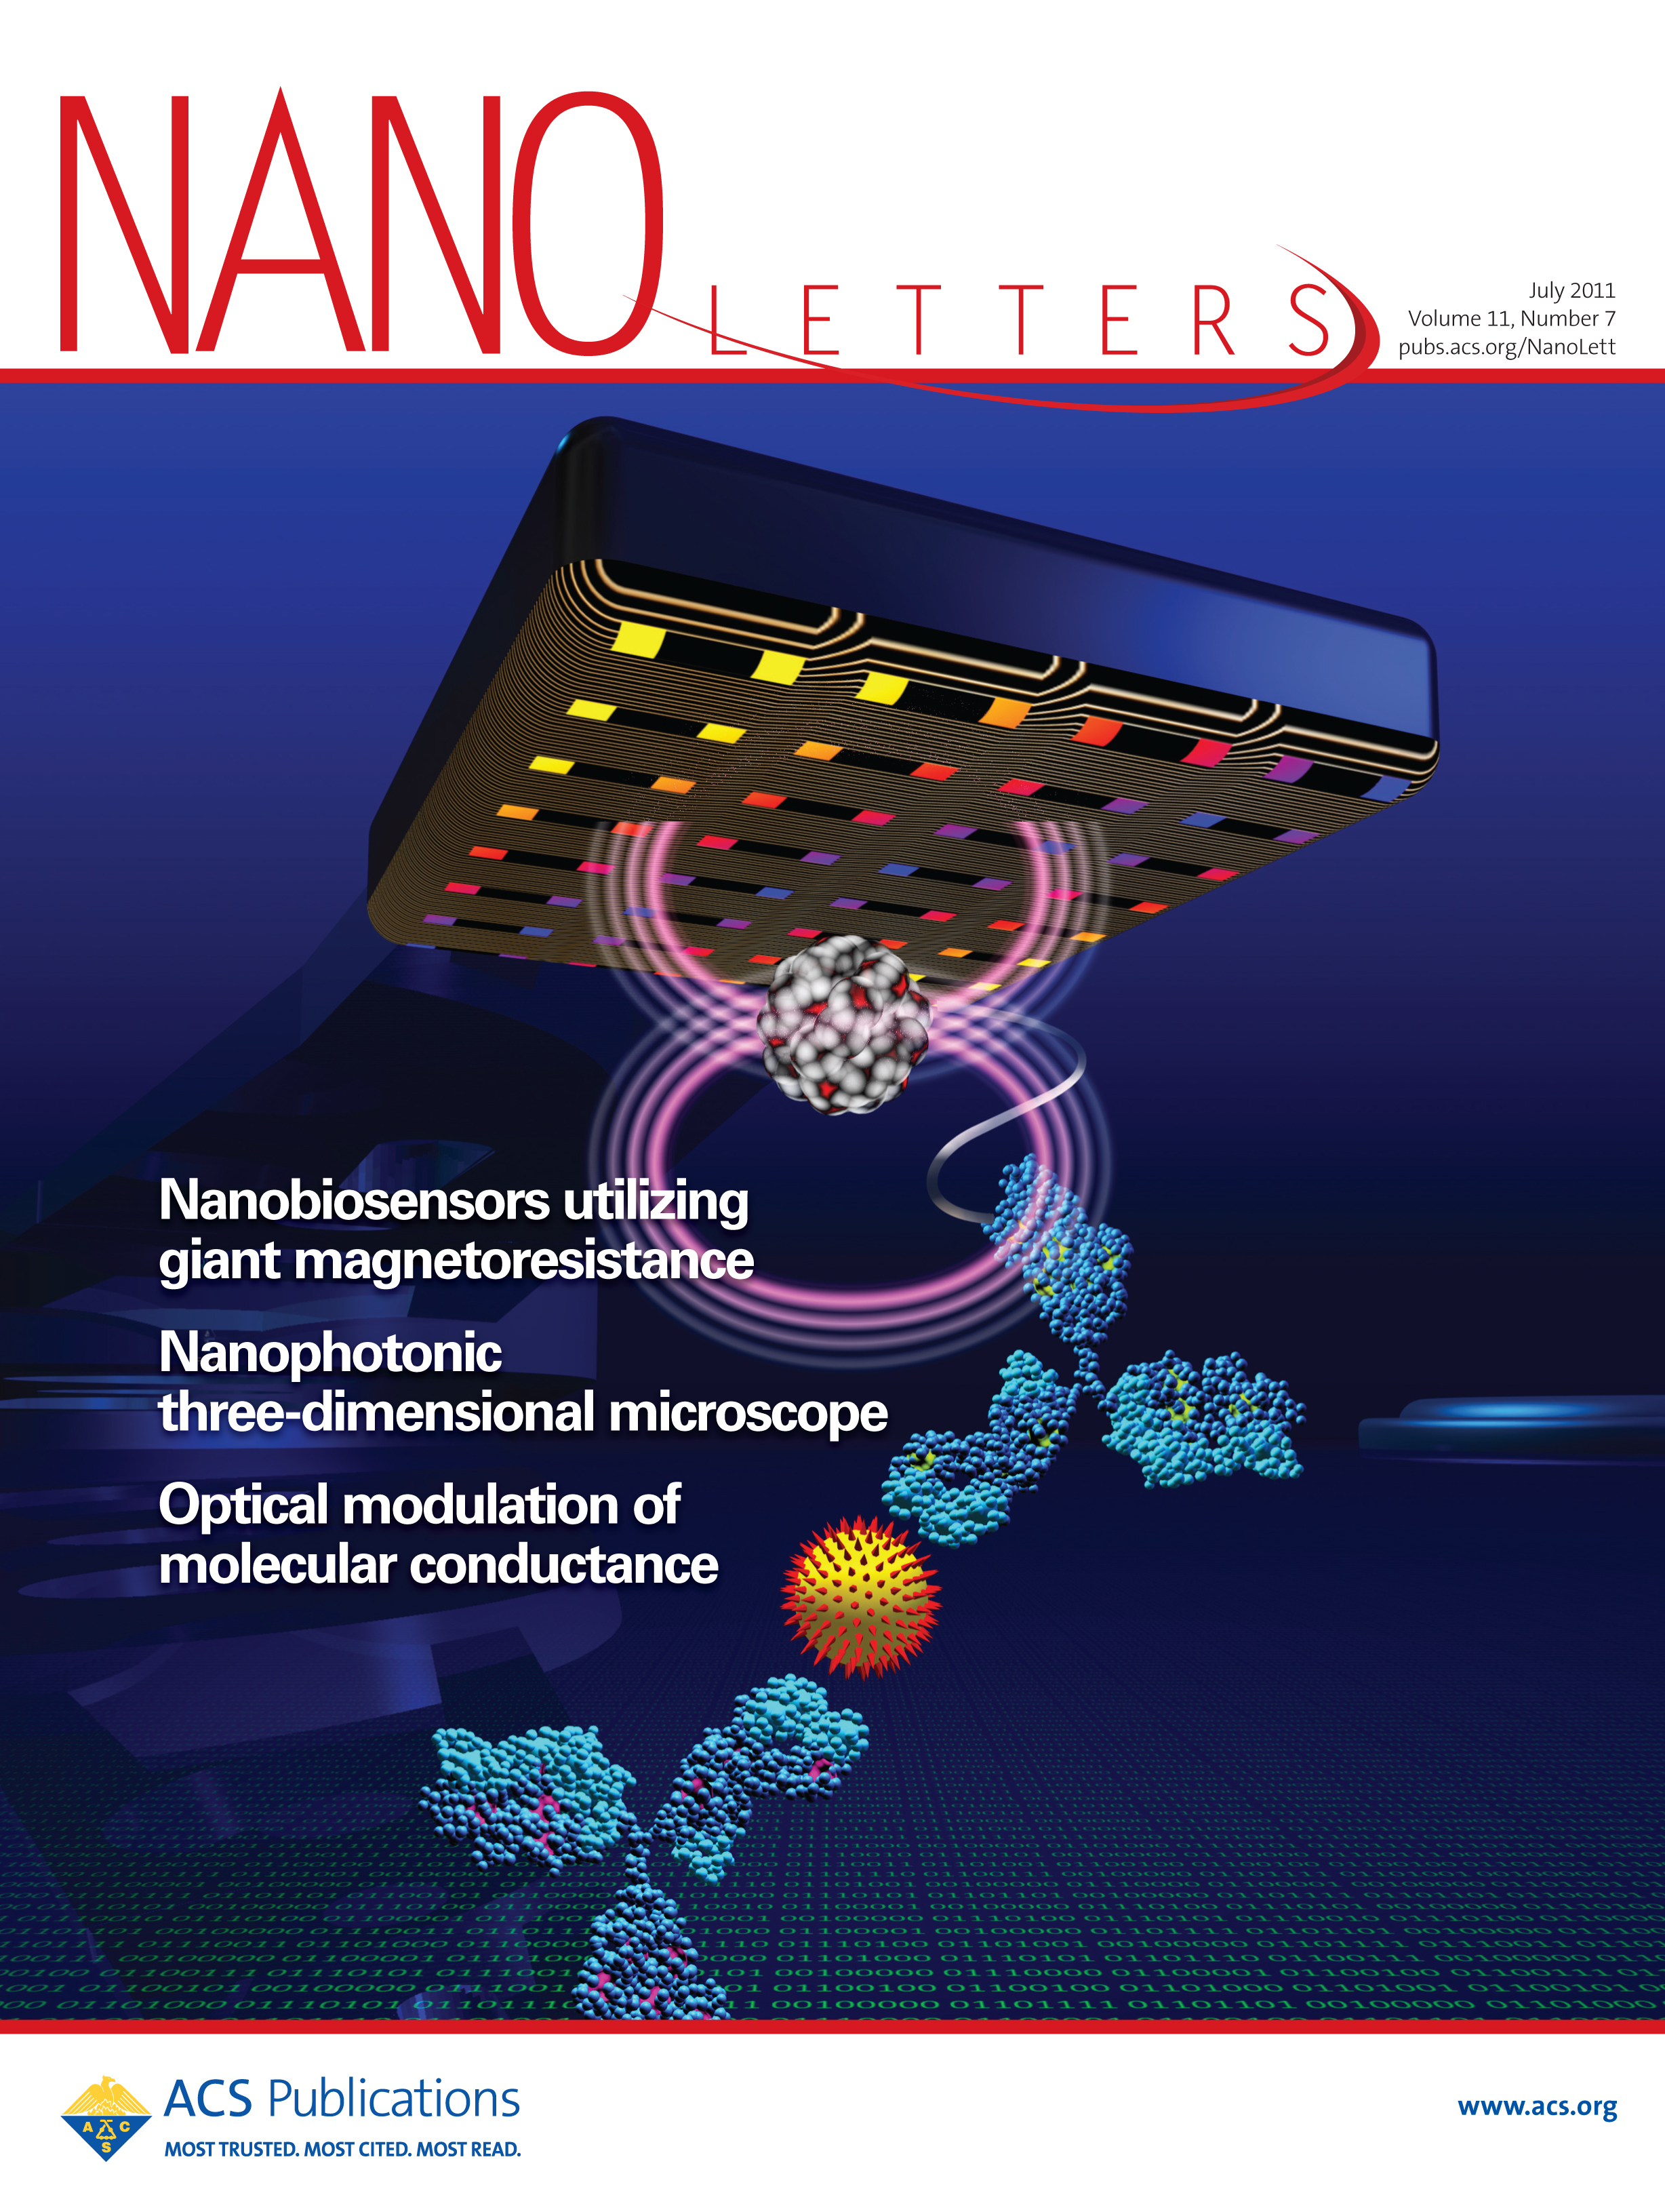 biosensors and bioelectronics Biosensors and bioelectronics 74 (2015) 1047–1052 can be used as a selectively permeable membrane in the outer layer, asymmetric porous structure of pvdf and .